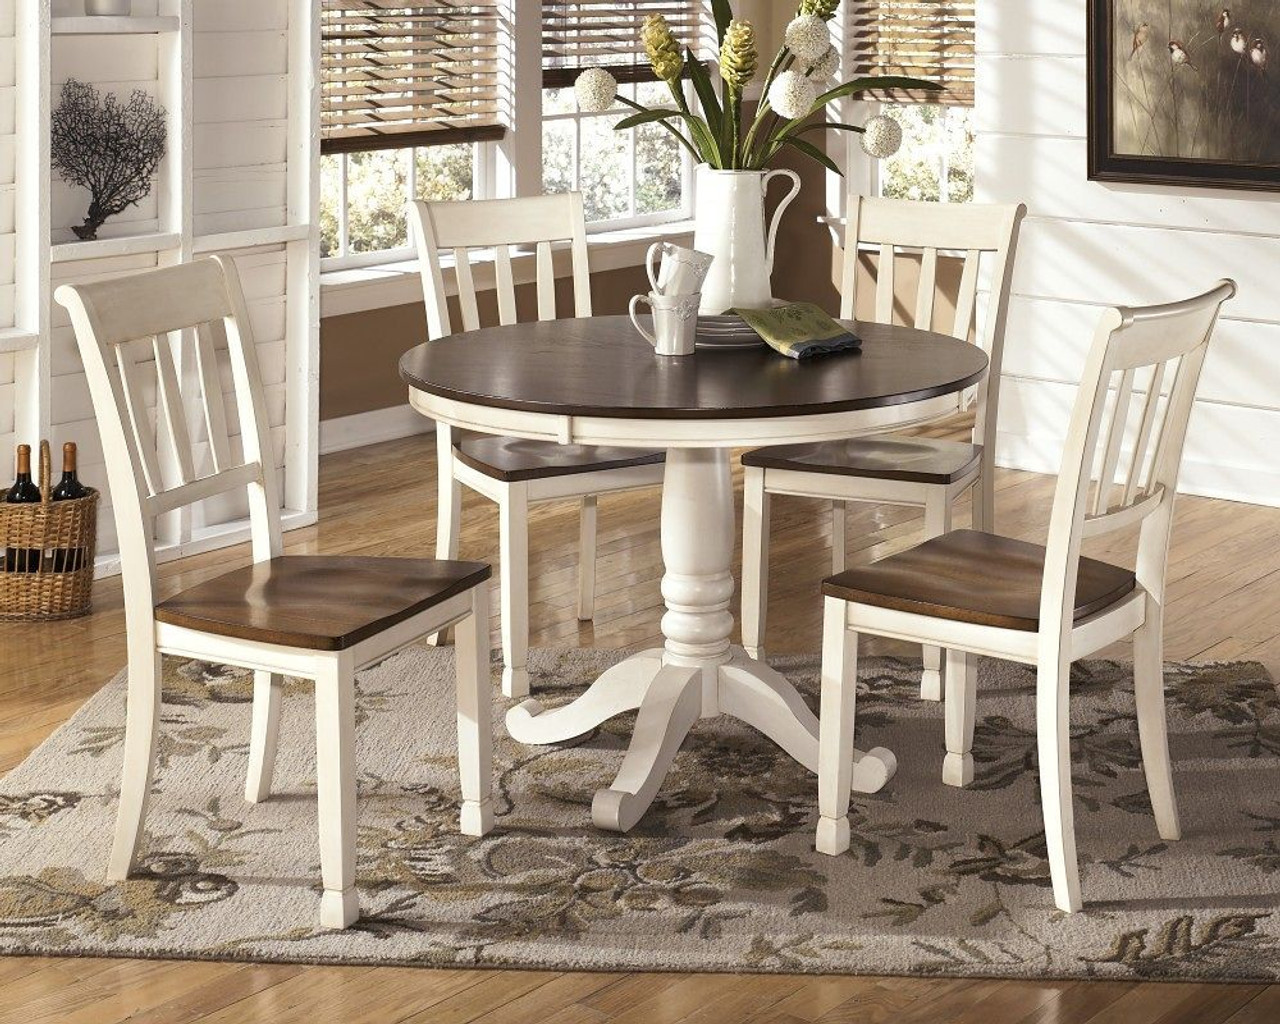 Cottage dining room tables Light Leg The Whitesburg Browncottage White Pc Round Dining Room Set Available At Barnett And Swann In Athens Al Home Living Furniture The Whitesburg Browncottage White Pc Round Dining Room Set